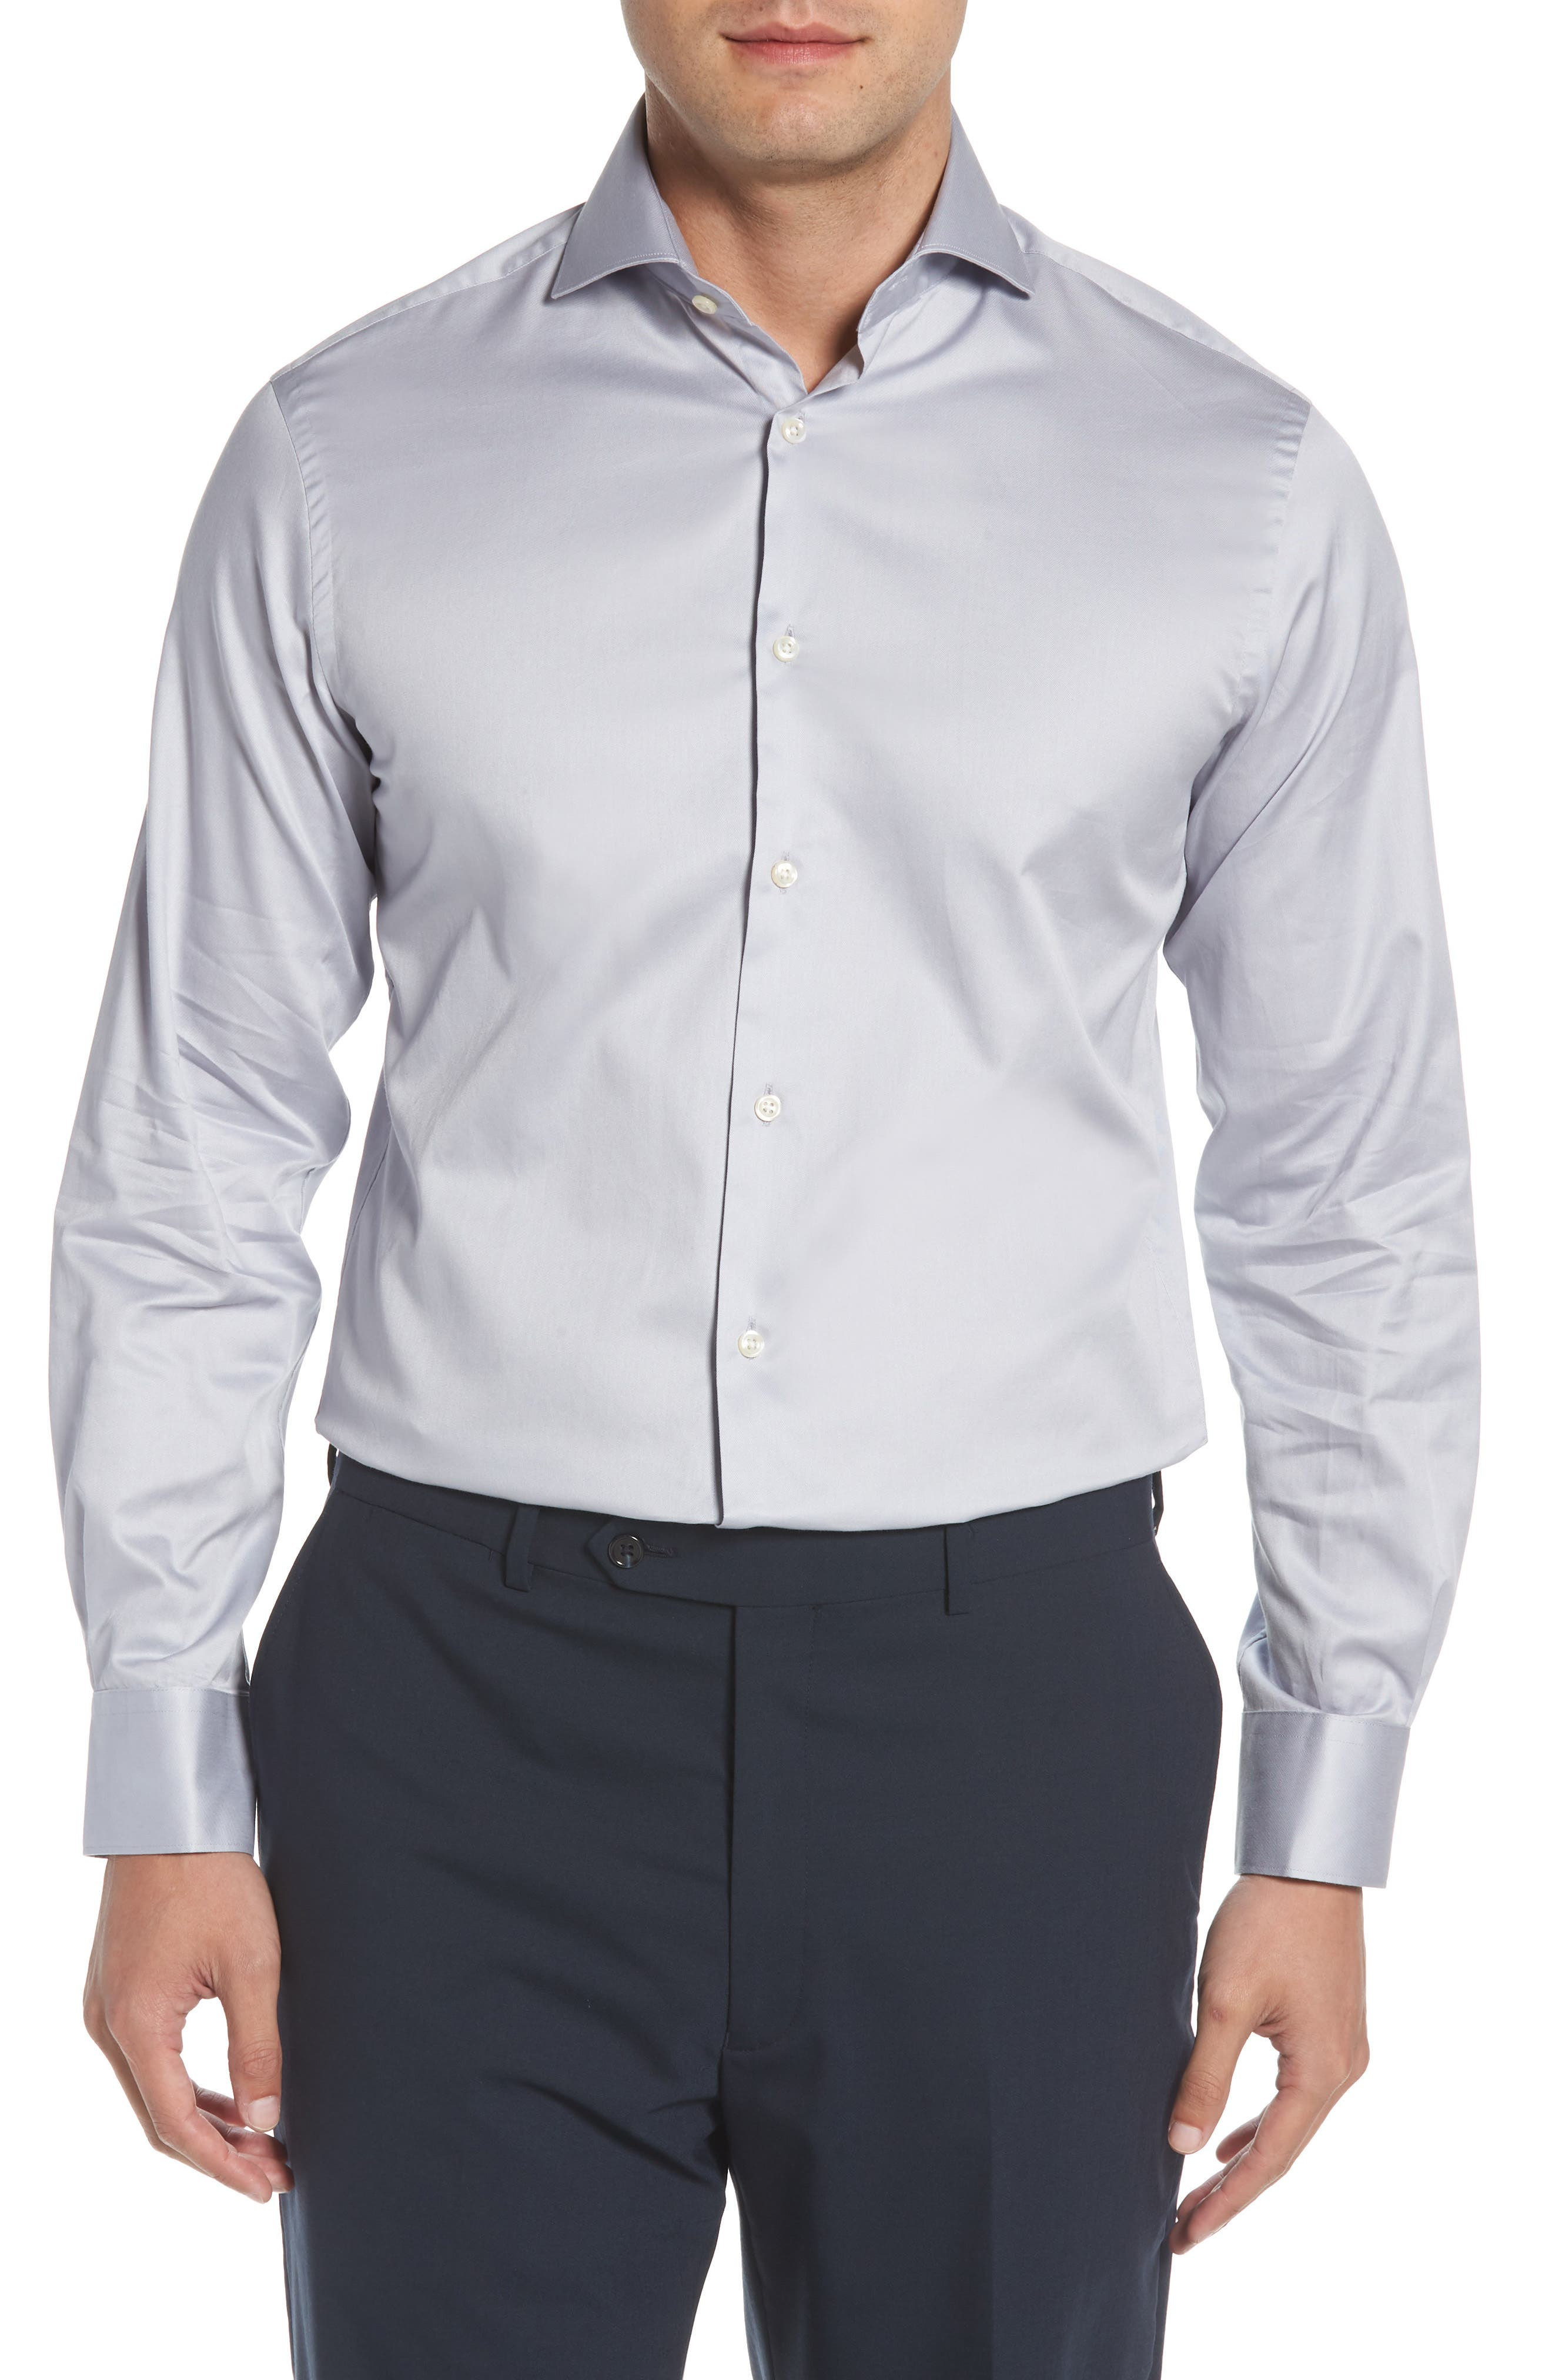 Regular Fit Solid Dress Shirt,                             Main thumbnail 1, color,                             SILVER